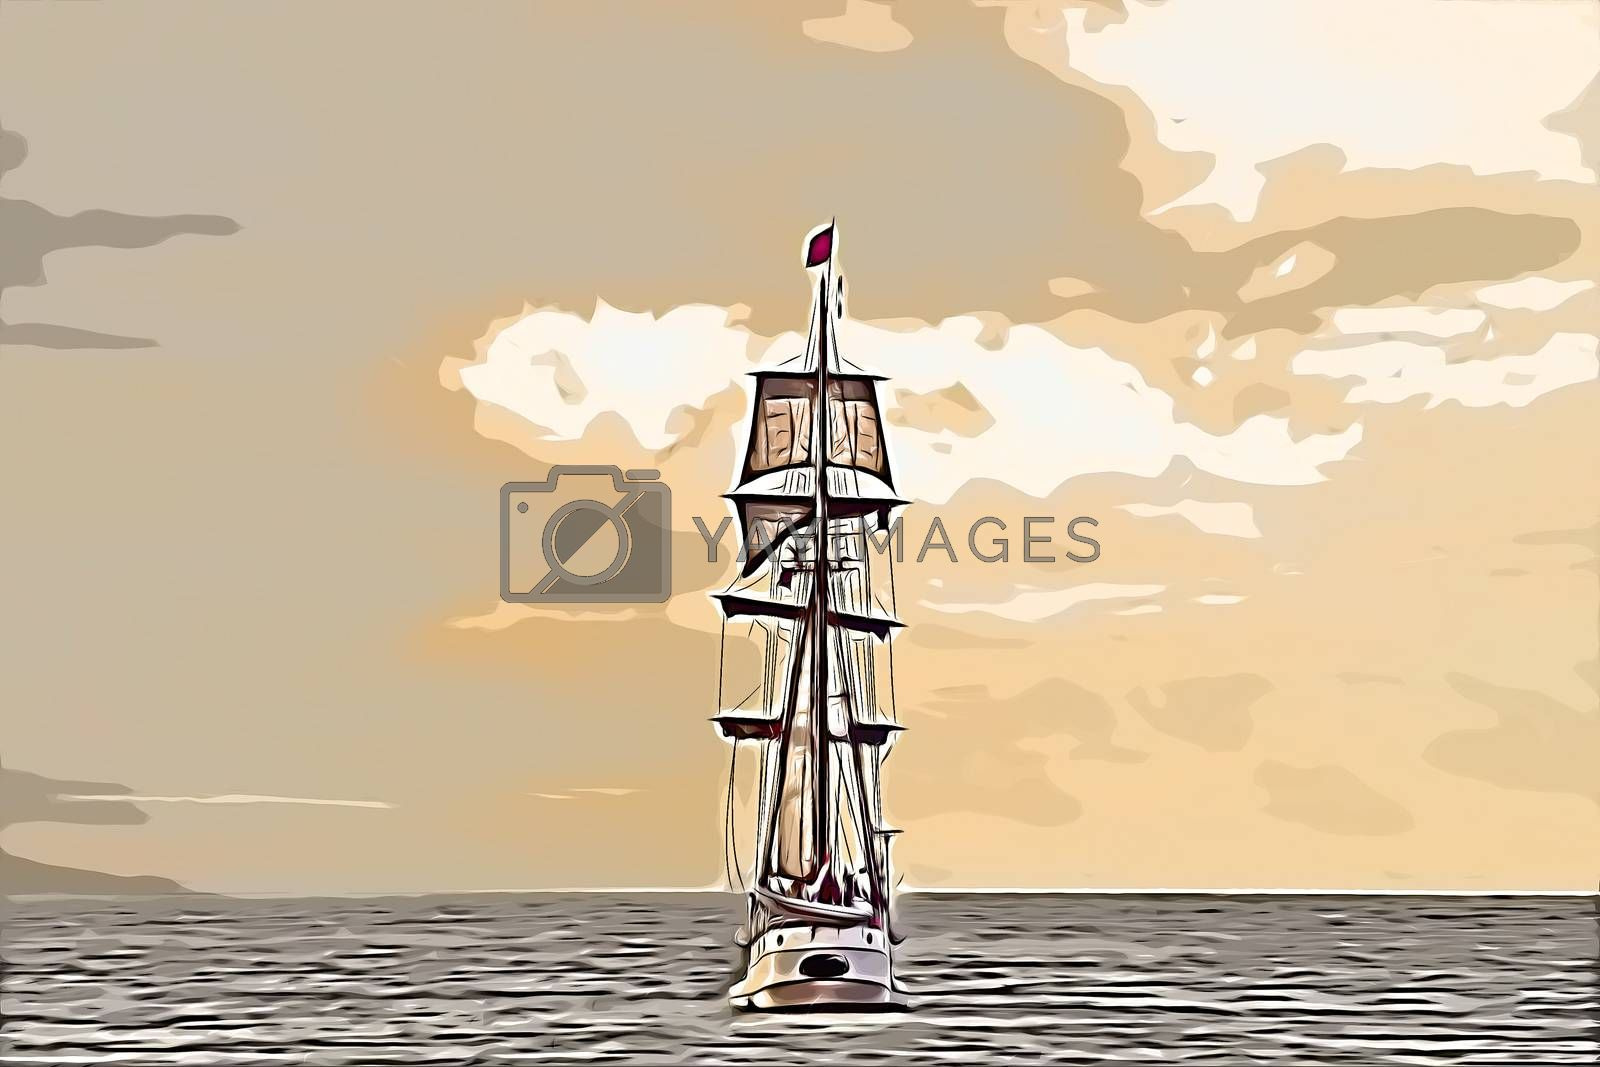 Antique tall ship, vessel leaving the harbor of The Hague, Scheveningen under a early warm sunset sky